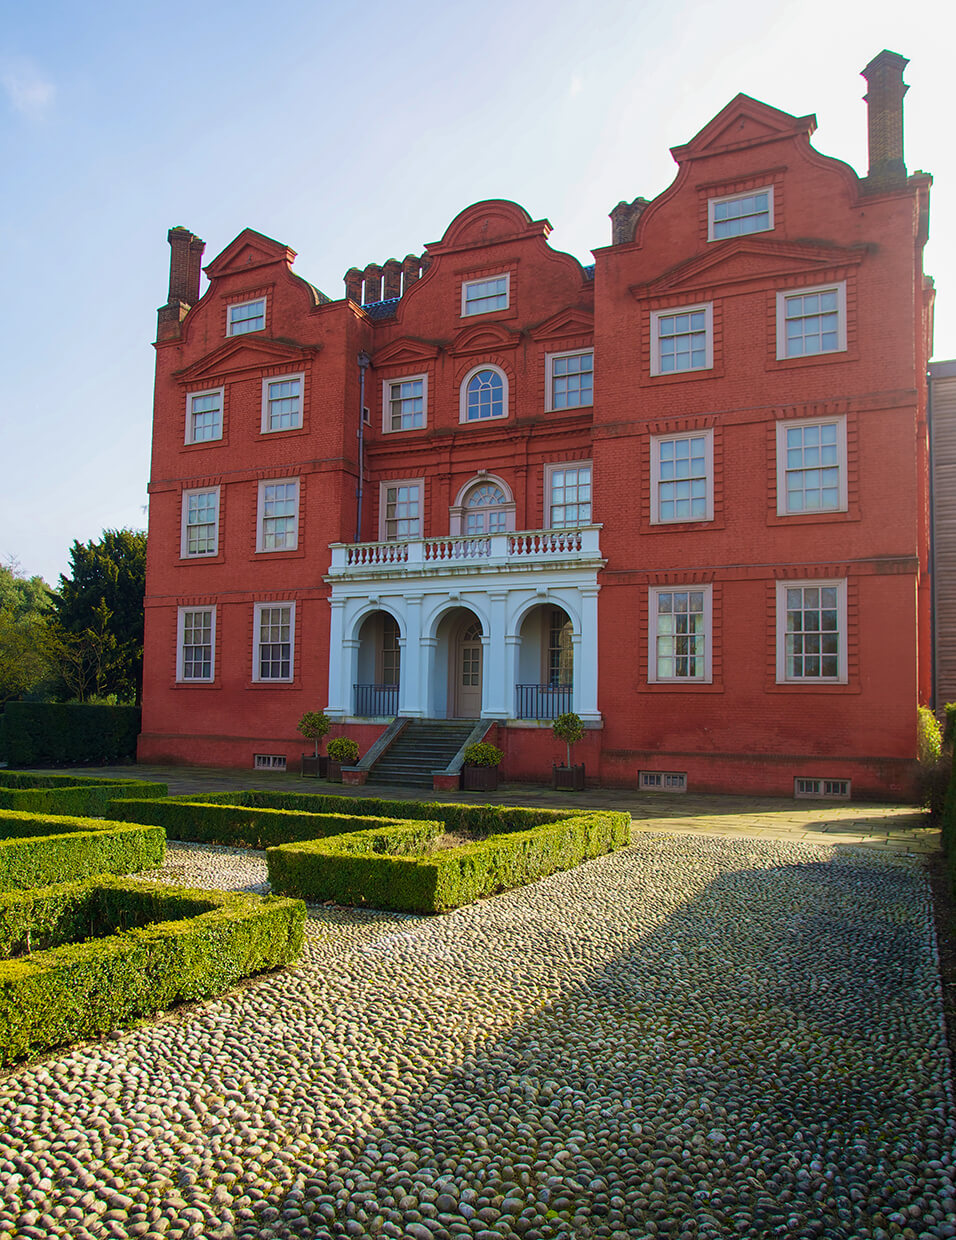 The exterior of Kew Palace in England